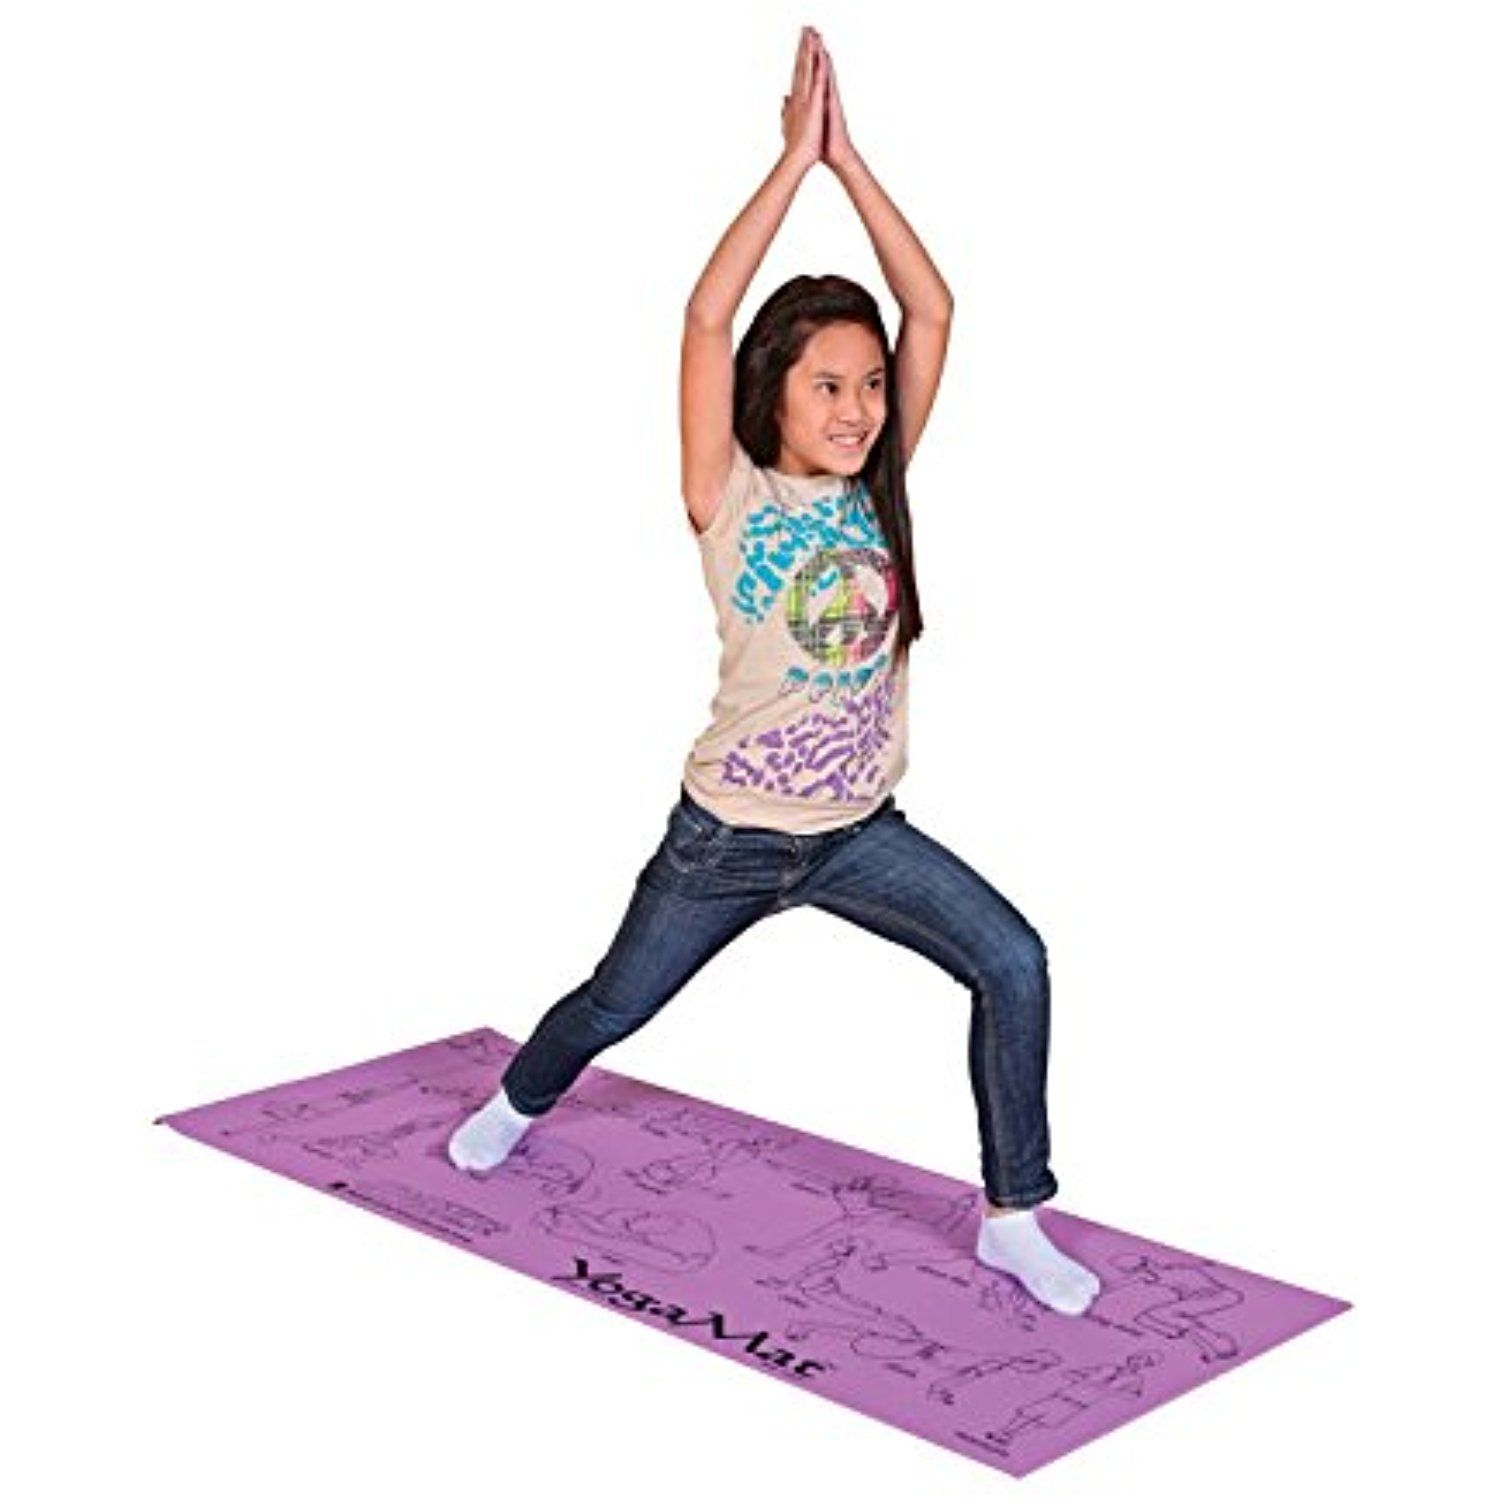 Sportime Illustrated Youth Yoga Mat With Pose Images 24 X 68 X 1 8 Inches You Can Find More Details By Visiting Th Learn Yoga Poses Yoga Images Yoga Poses